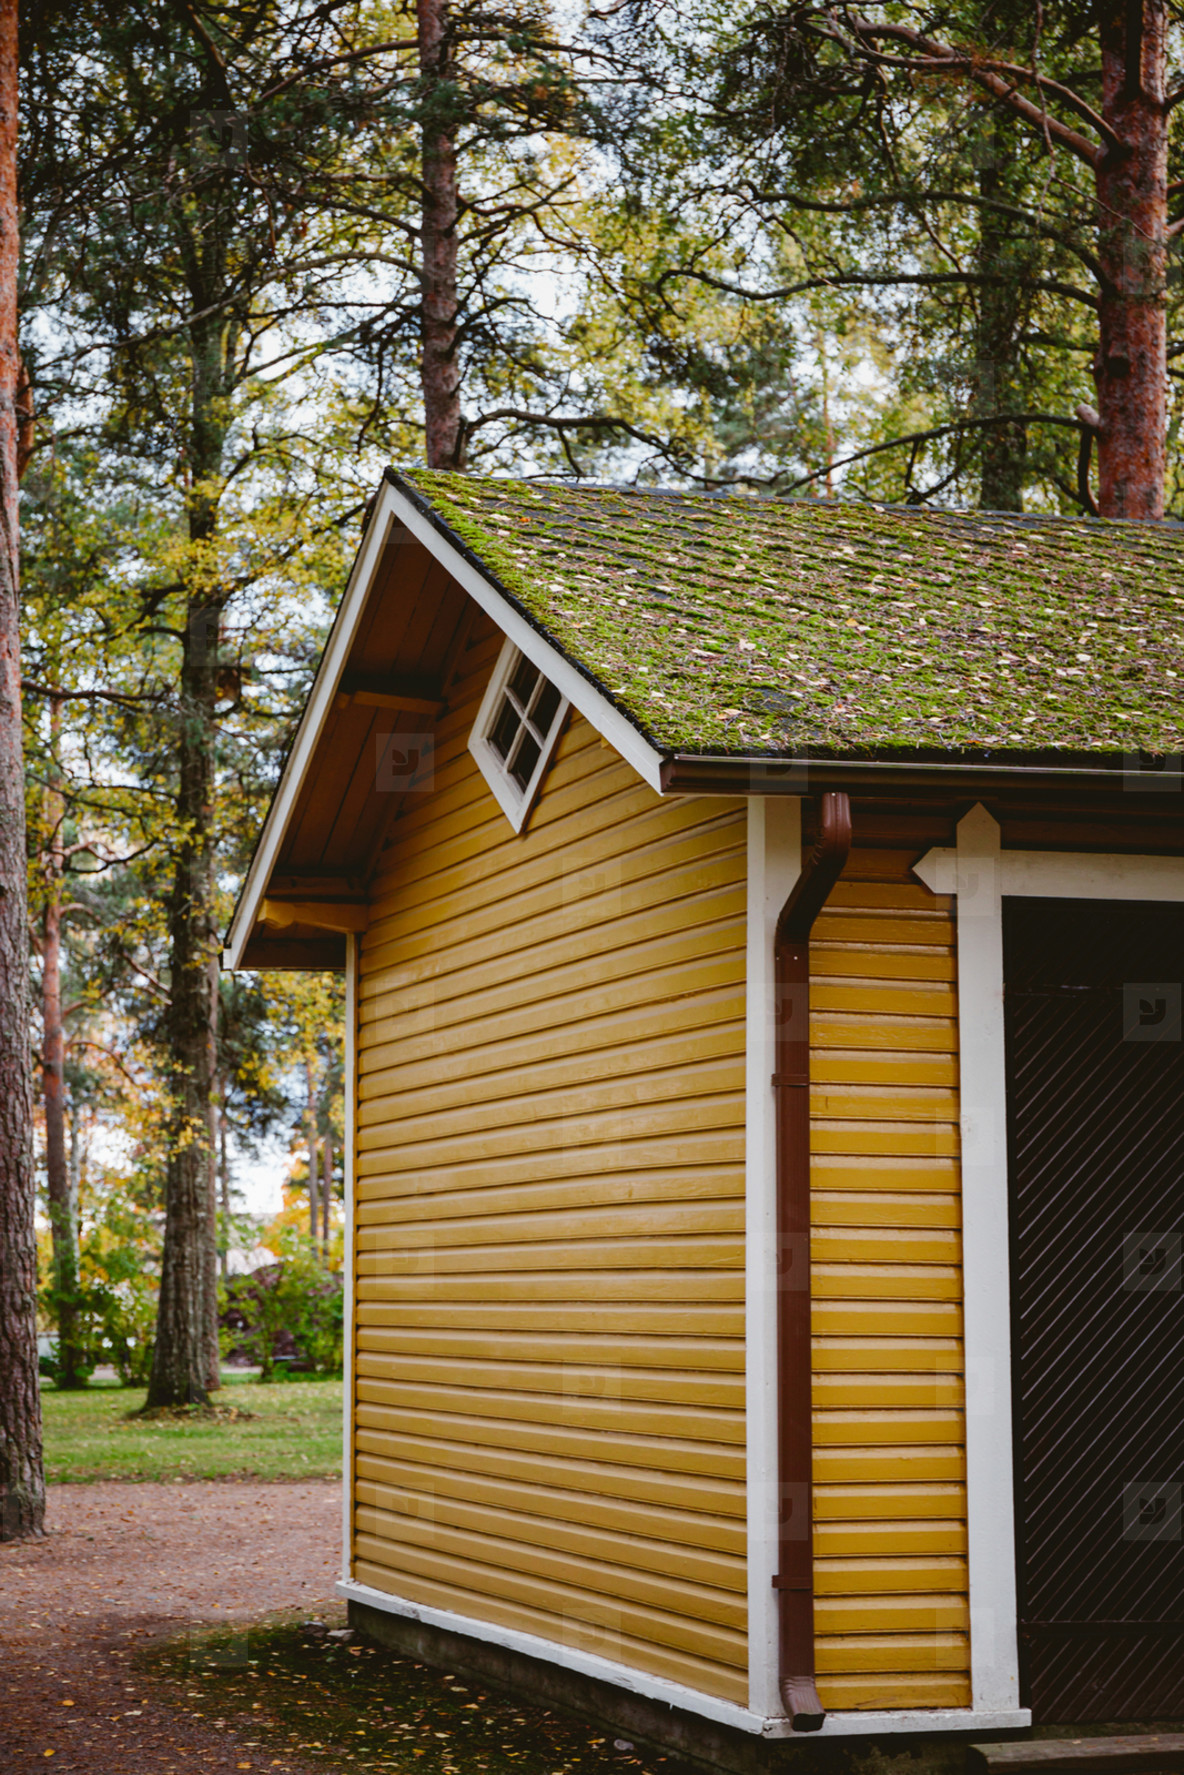 Fragment of wooden finnish yellow house in a forest